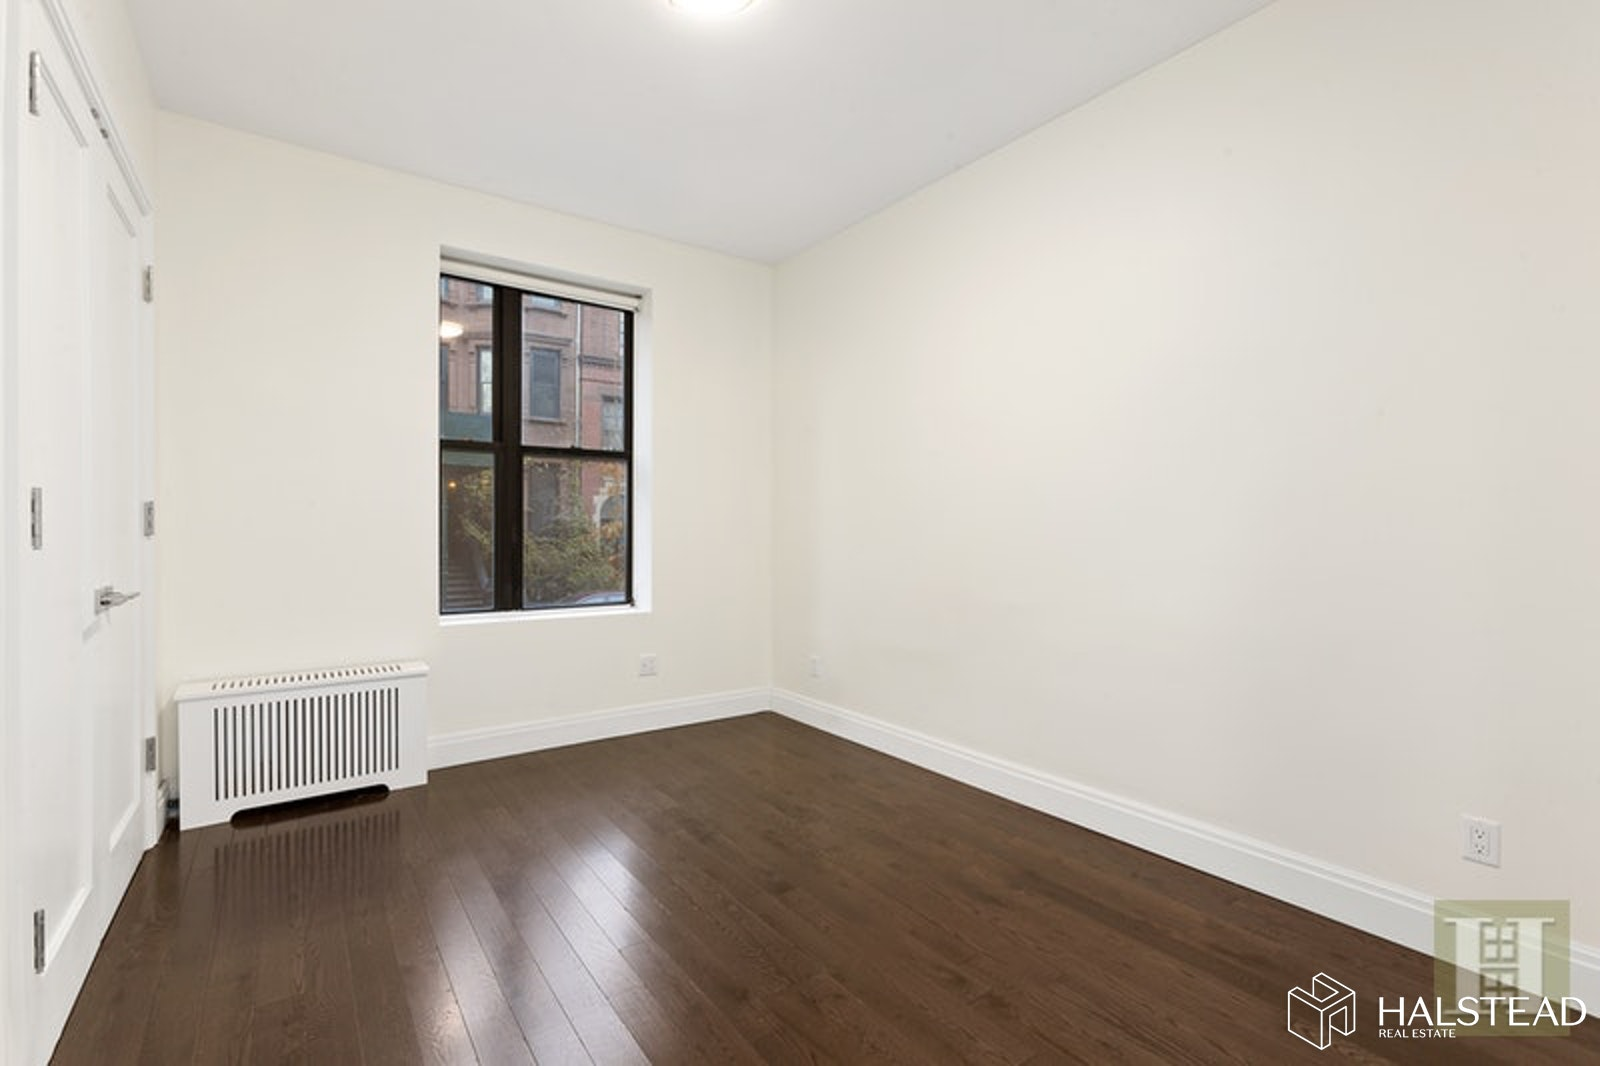 98 Morningside Avenue 66, Upper Manhattan, NYC, 10027, Price Not Disclosed, Rented Property, Halstead Real Estate, Photo 5